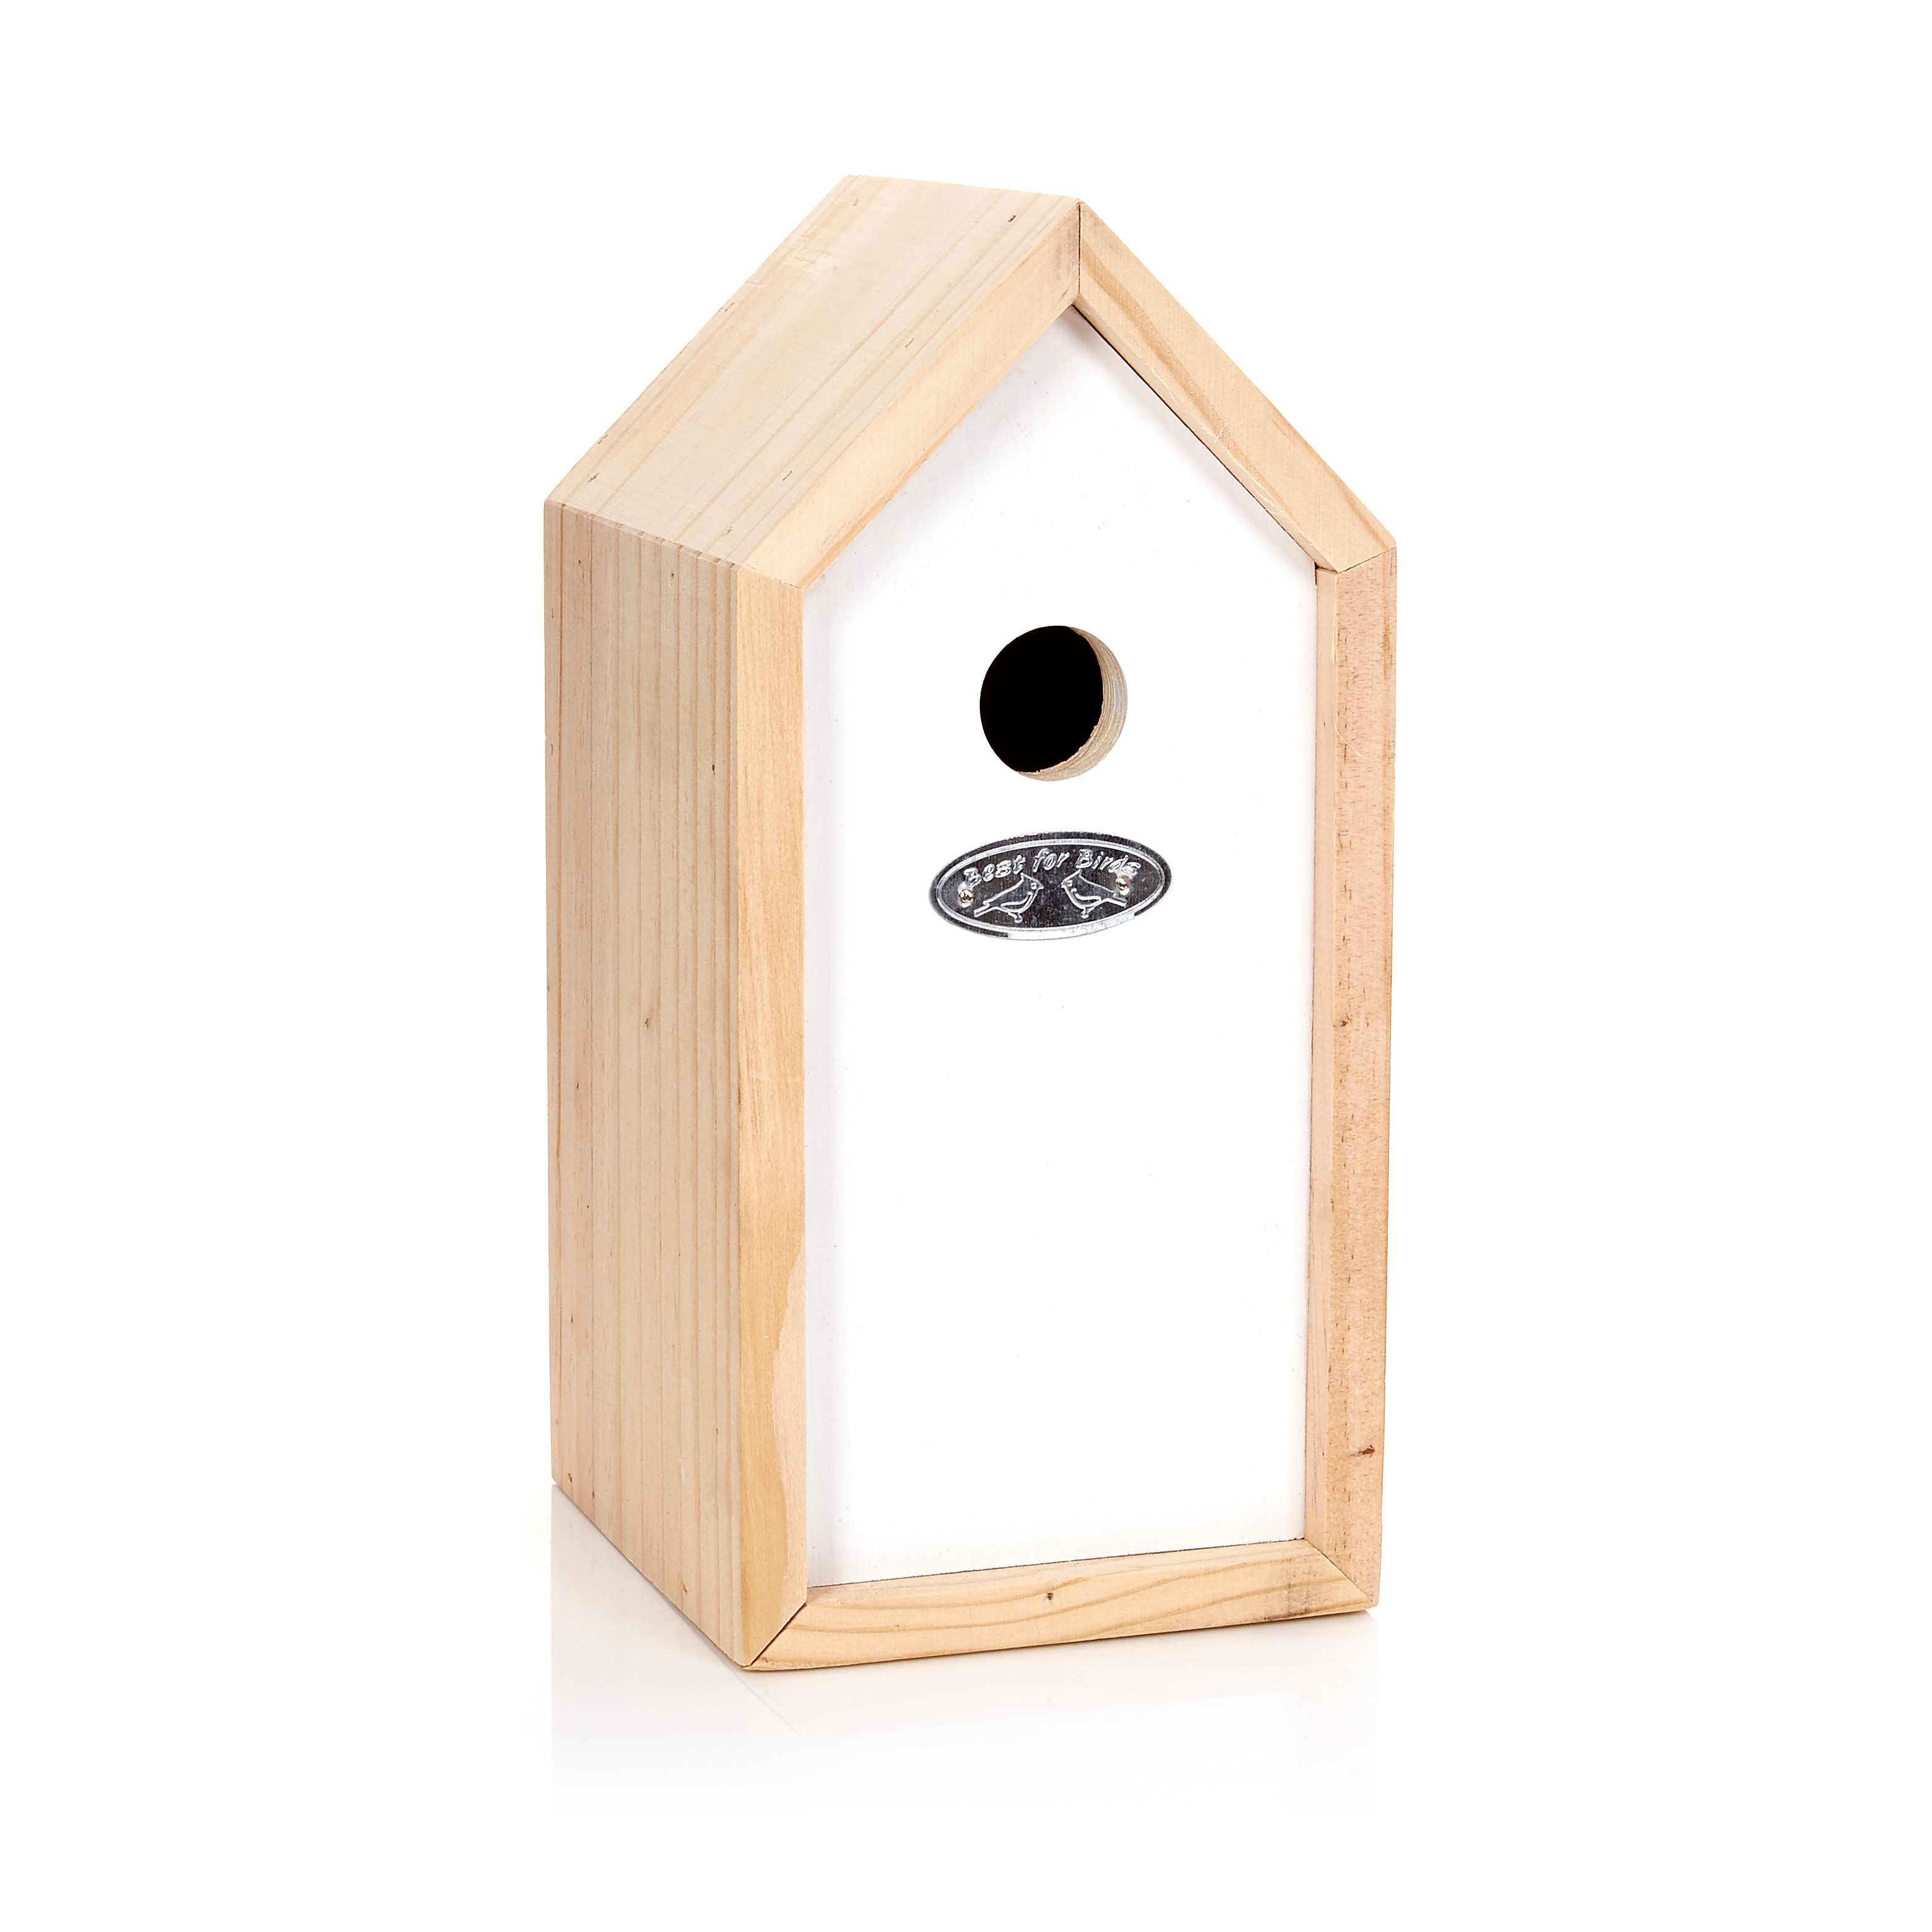 Sutton Bird Box White £15 shop.royalacademy.org.uk